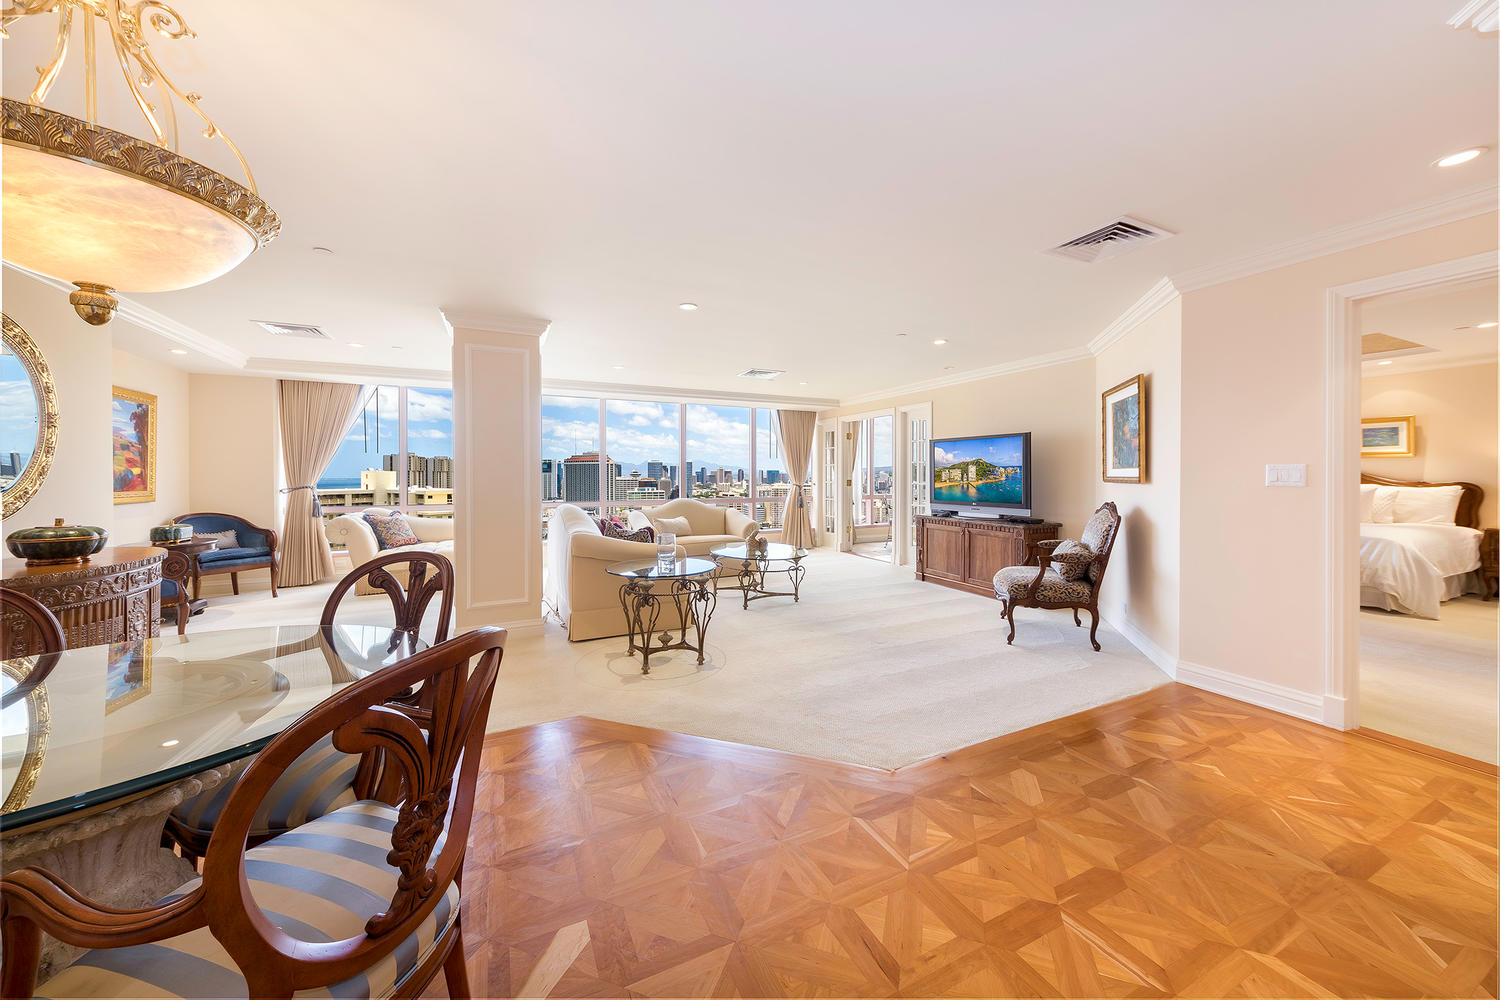 2 BDS LUXURY PENTHOUSE   $13,500 / monthly - Contact us for special rates  FURNISHED  2 BEDROOMS  2 FULL BATHS  2,015 sq. ft.  Hawaii State License #: GE-197-531-0336-02, TA-197-531-0336-01